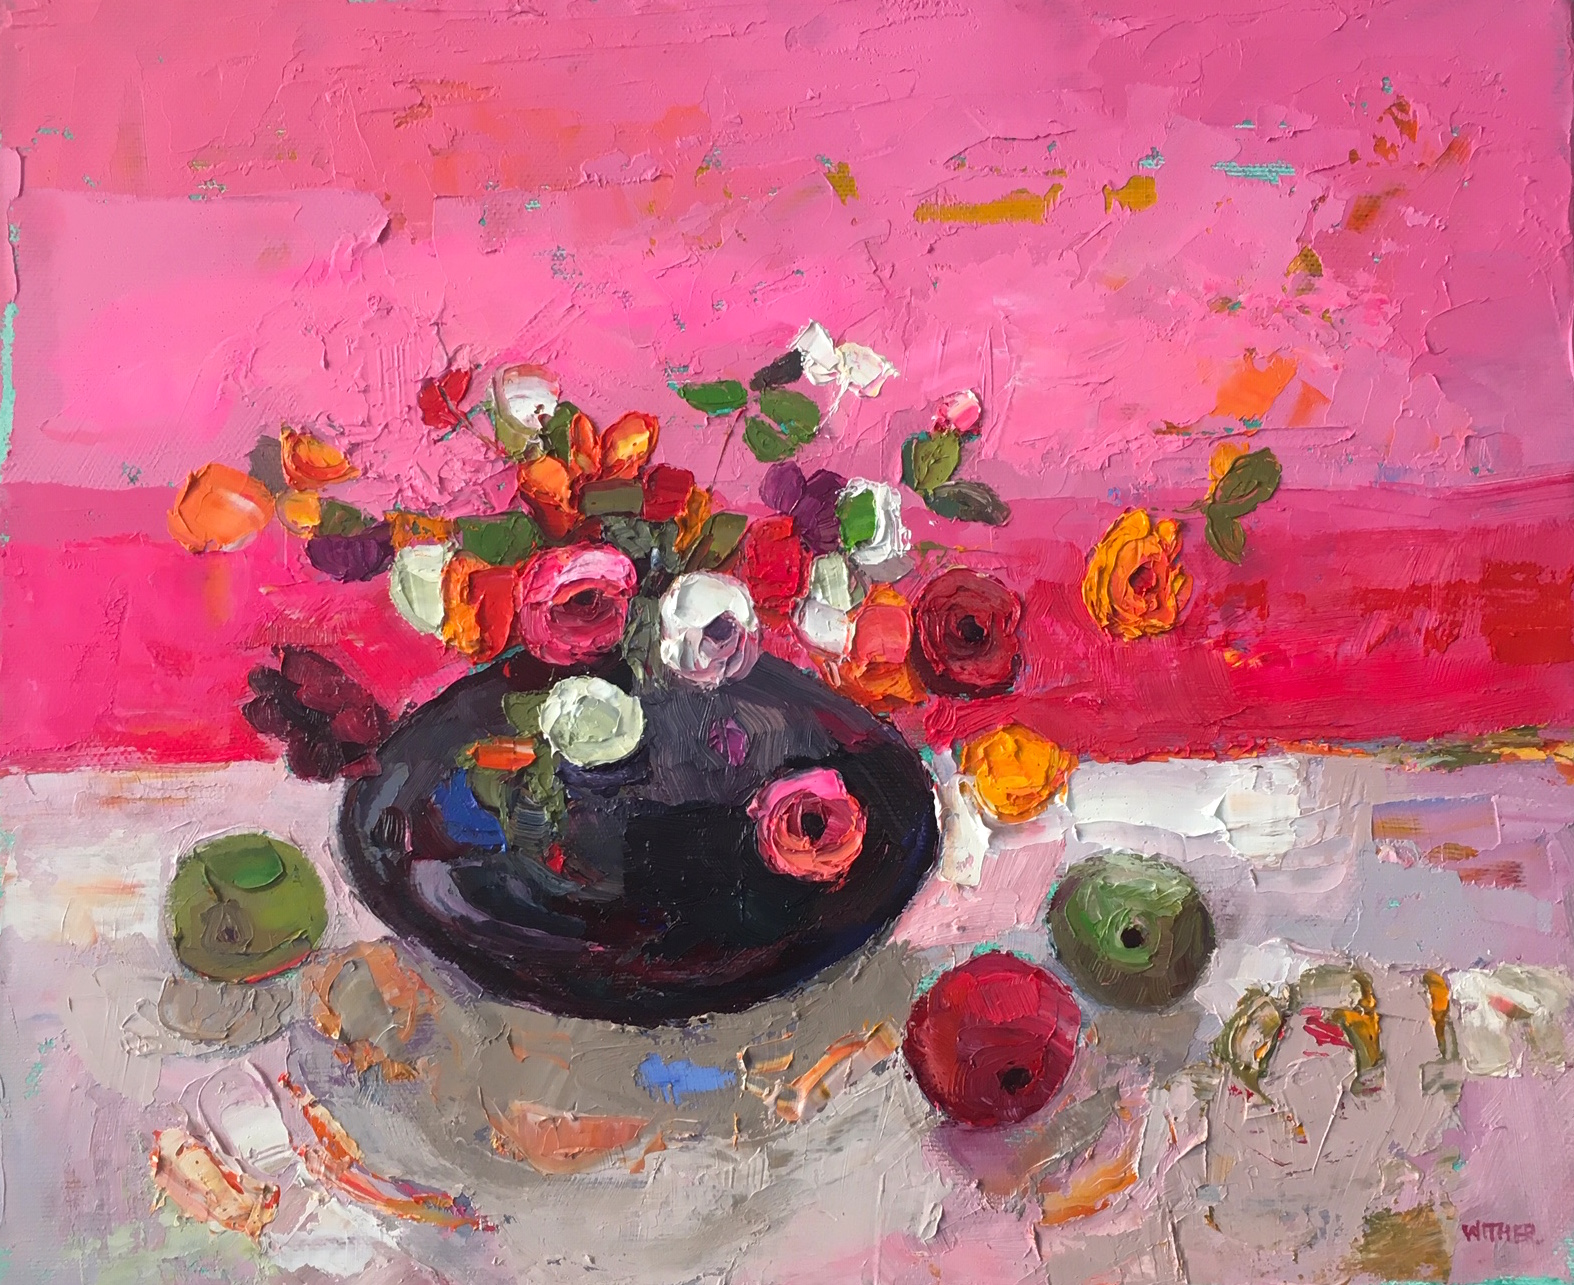 Artist: Kirsty Wither  Title: Three Wee Apples  Size: 25 x 30 cm  Medium: Oil on canvas  Price: £1500   Buy Now